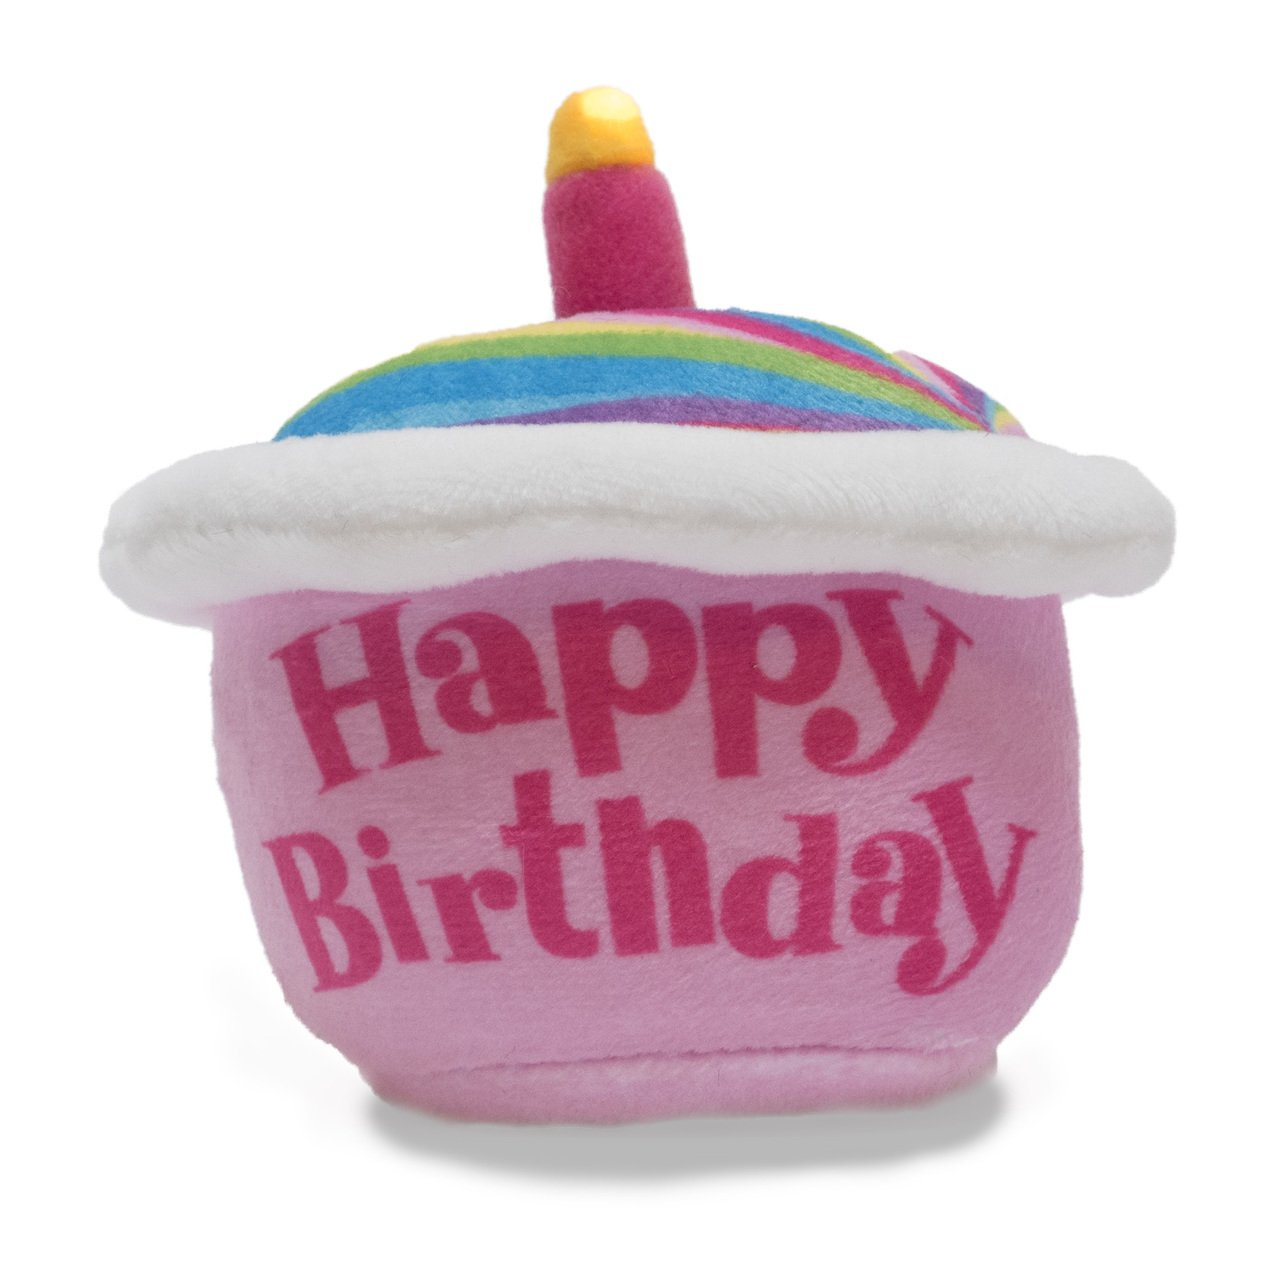 Cuddle Barn Birthday Cupcake Squeezer Lights Up and Plays Happy Birthday When Squeezed (Rainbow) by Cuddle Barn